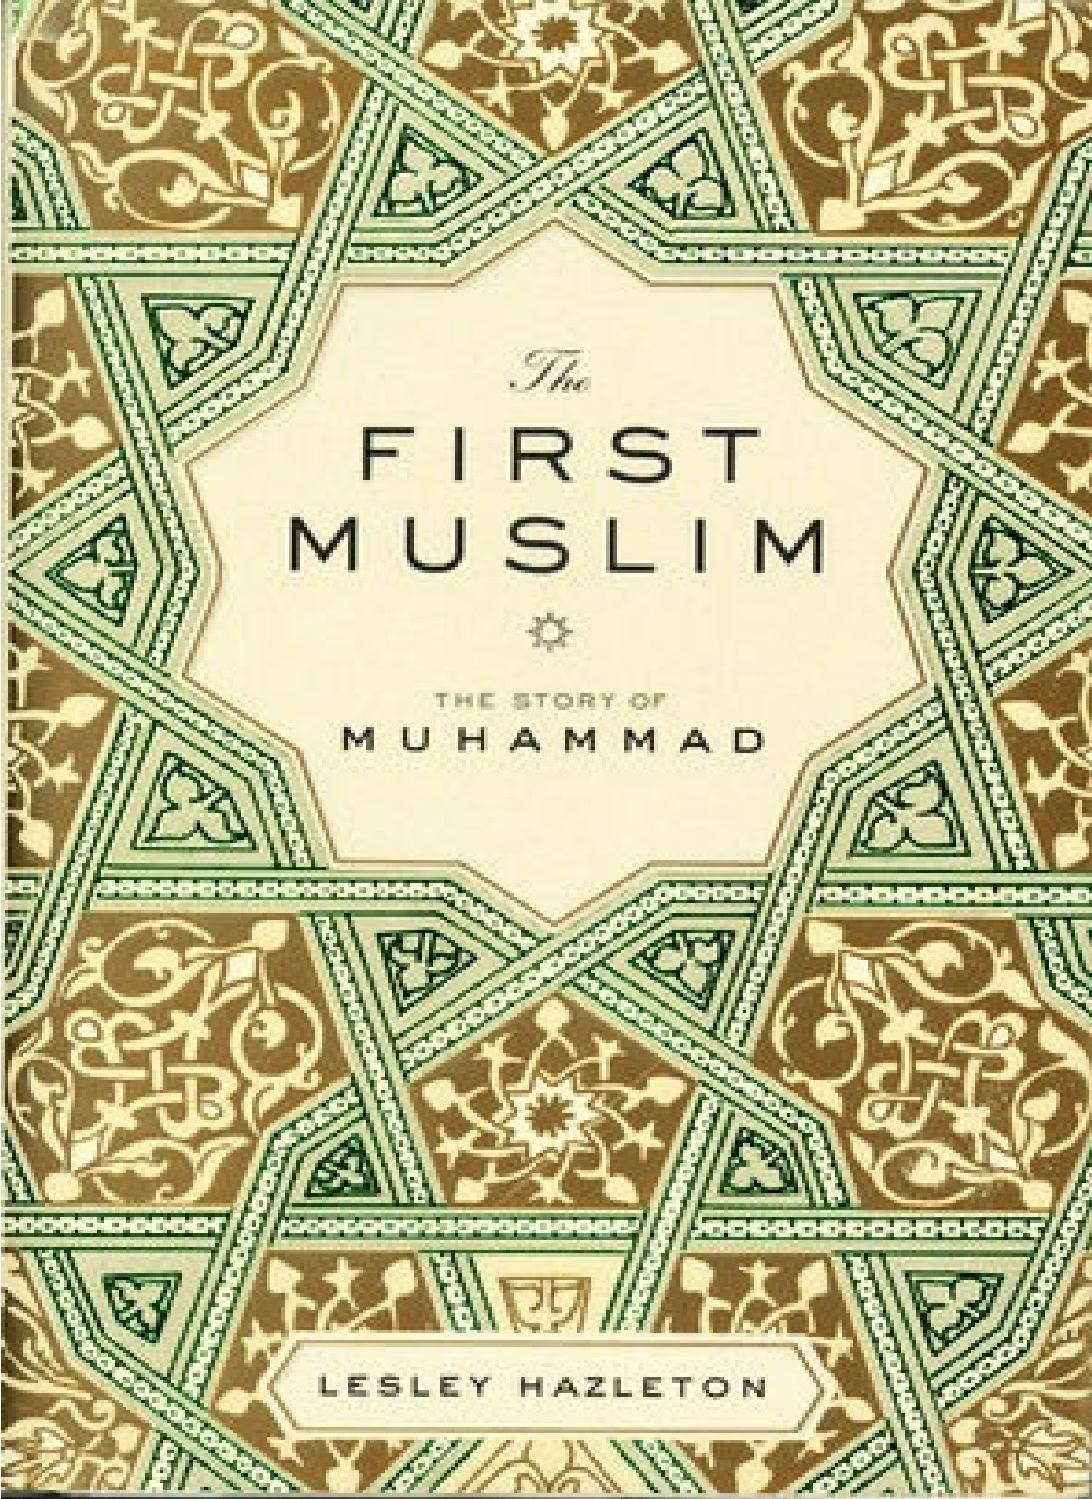 Lesley hazleton the first muslim the story of muhammad by